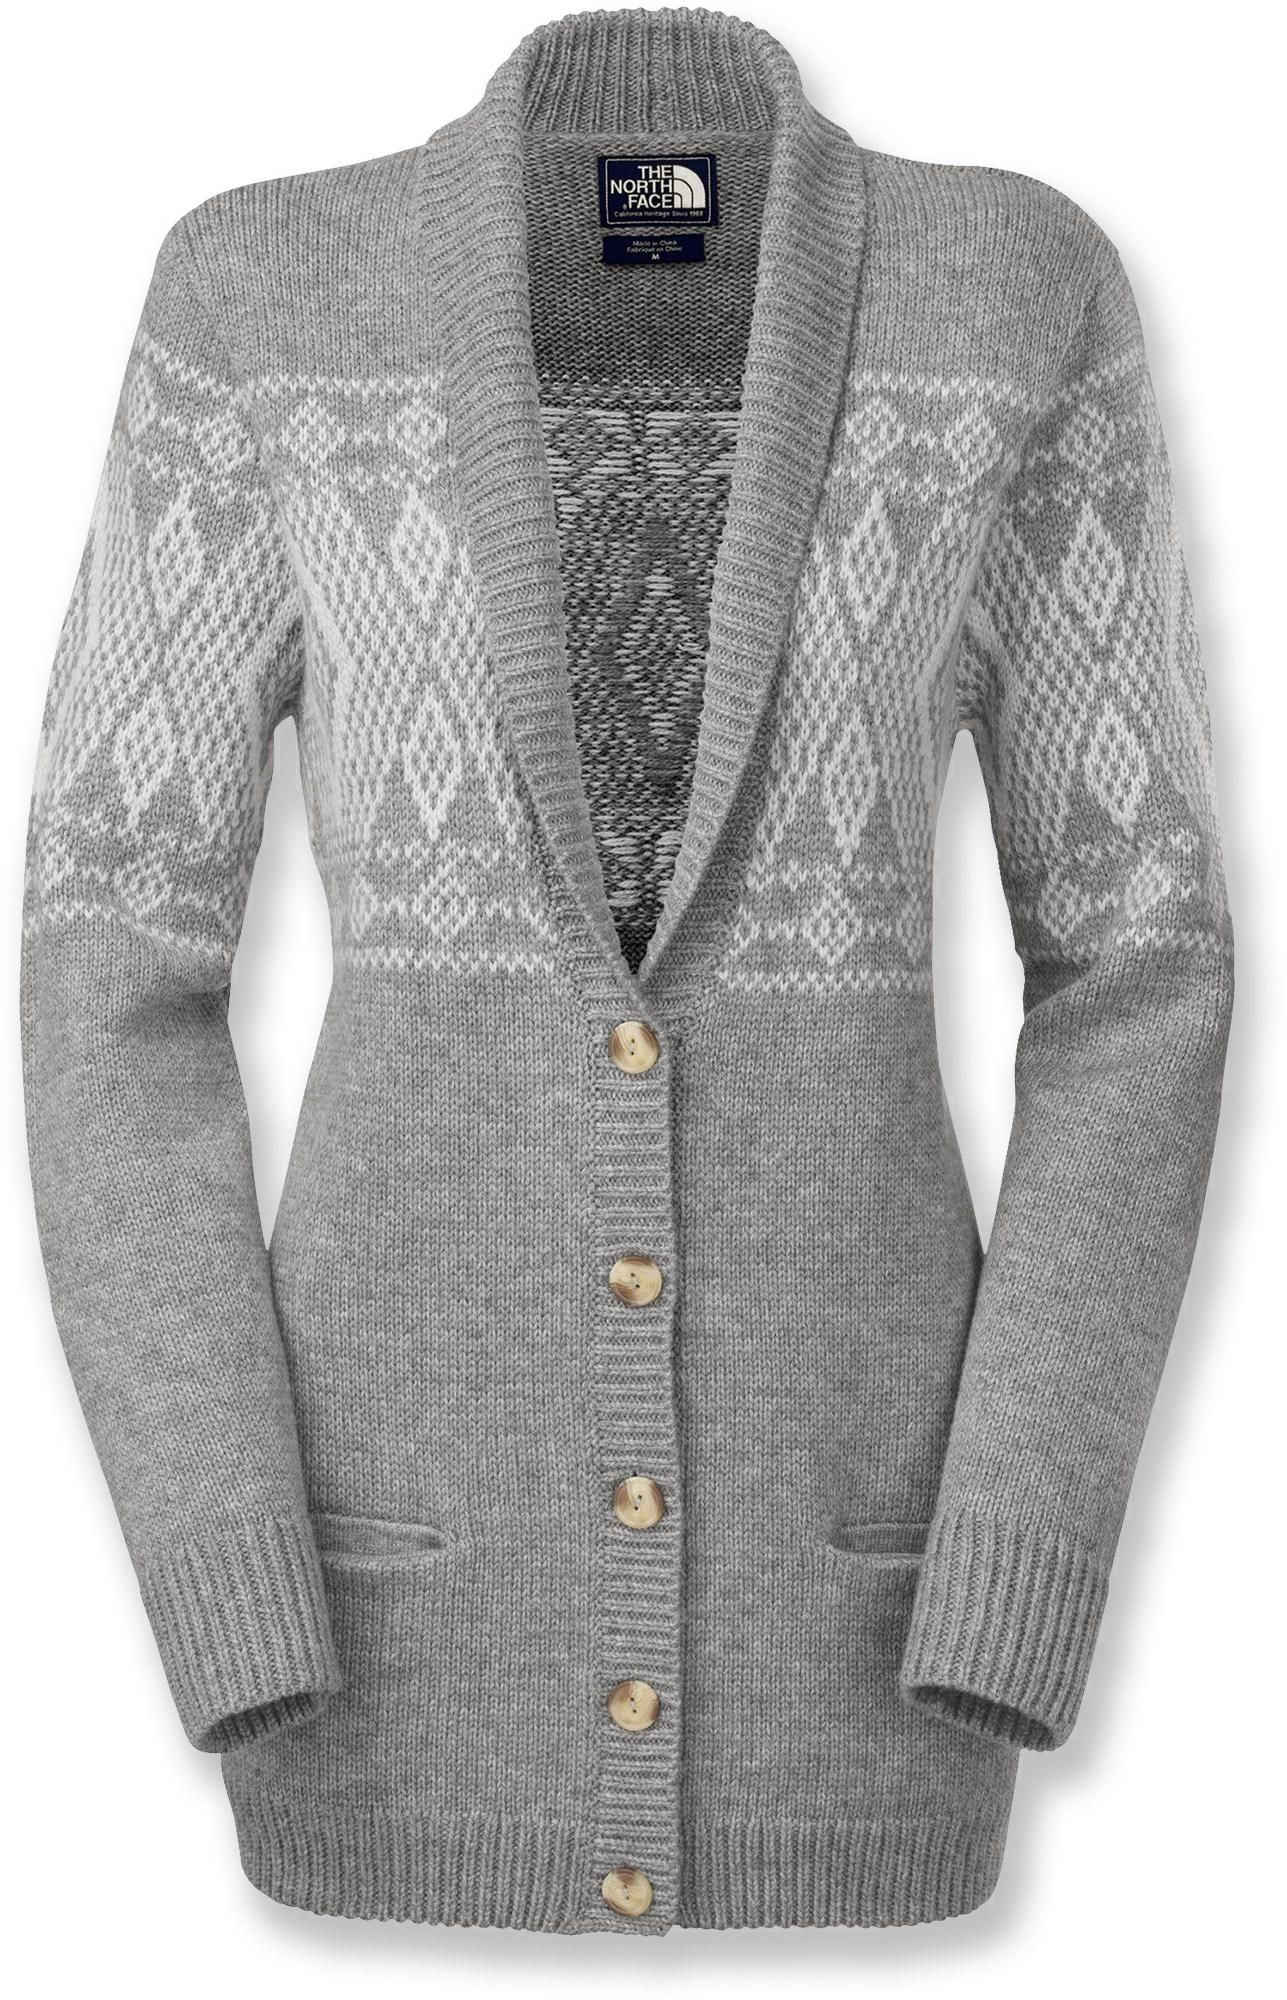 a9a612c0a36b Slip on The North Face Jacquardigan women s cardigan sweater and cozy up  with a cup of hot chocolate after a long